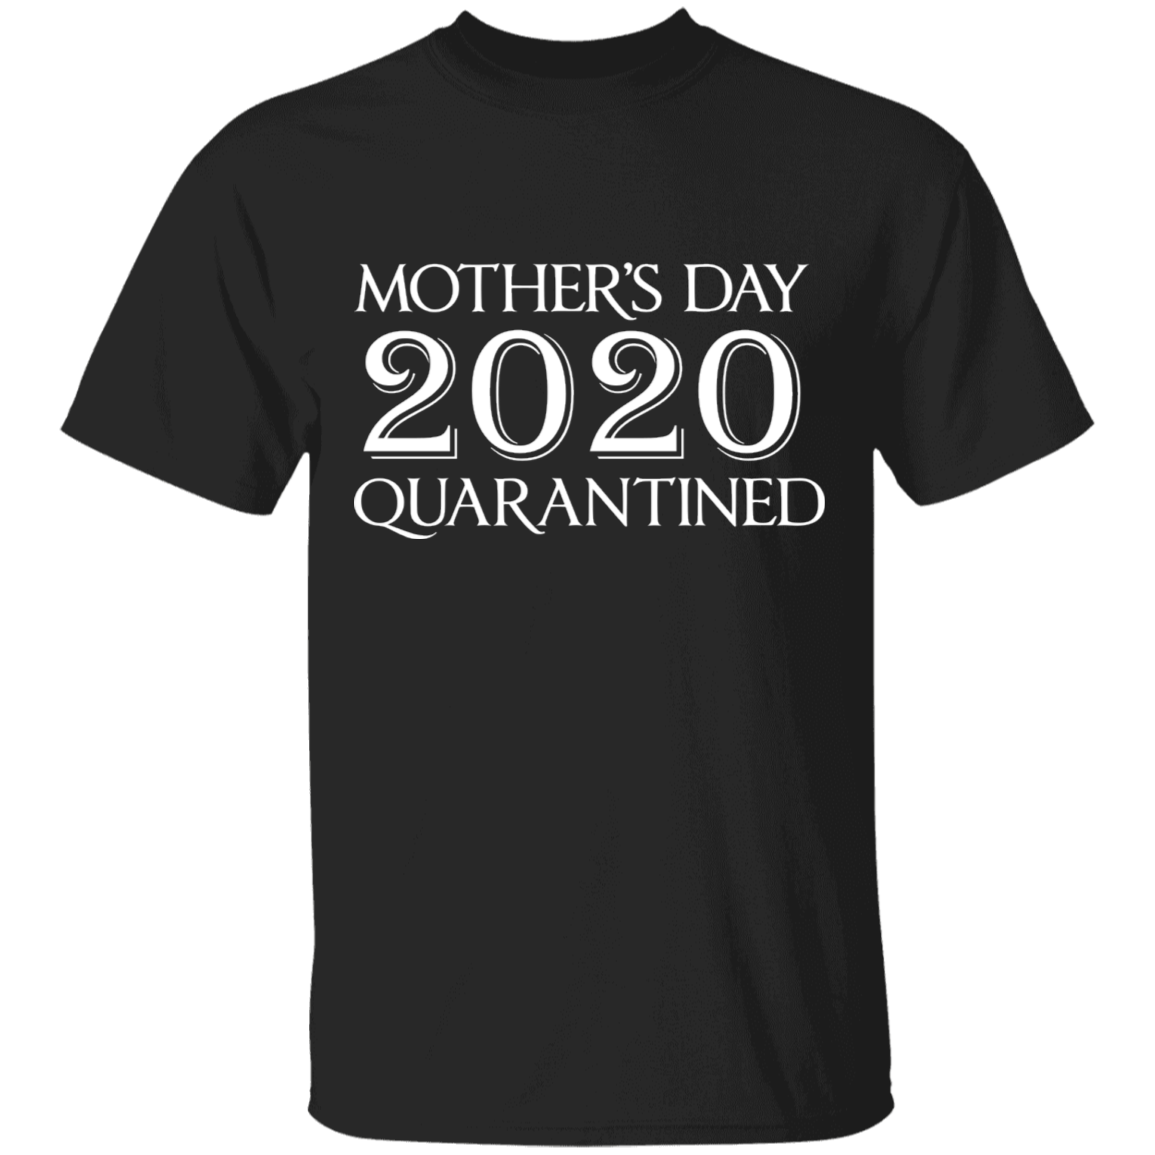 Mother's Day Quarantined T-Shirt